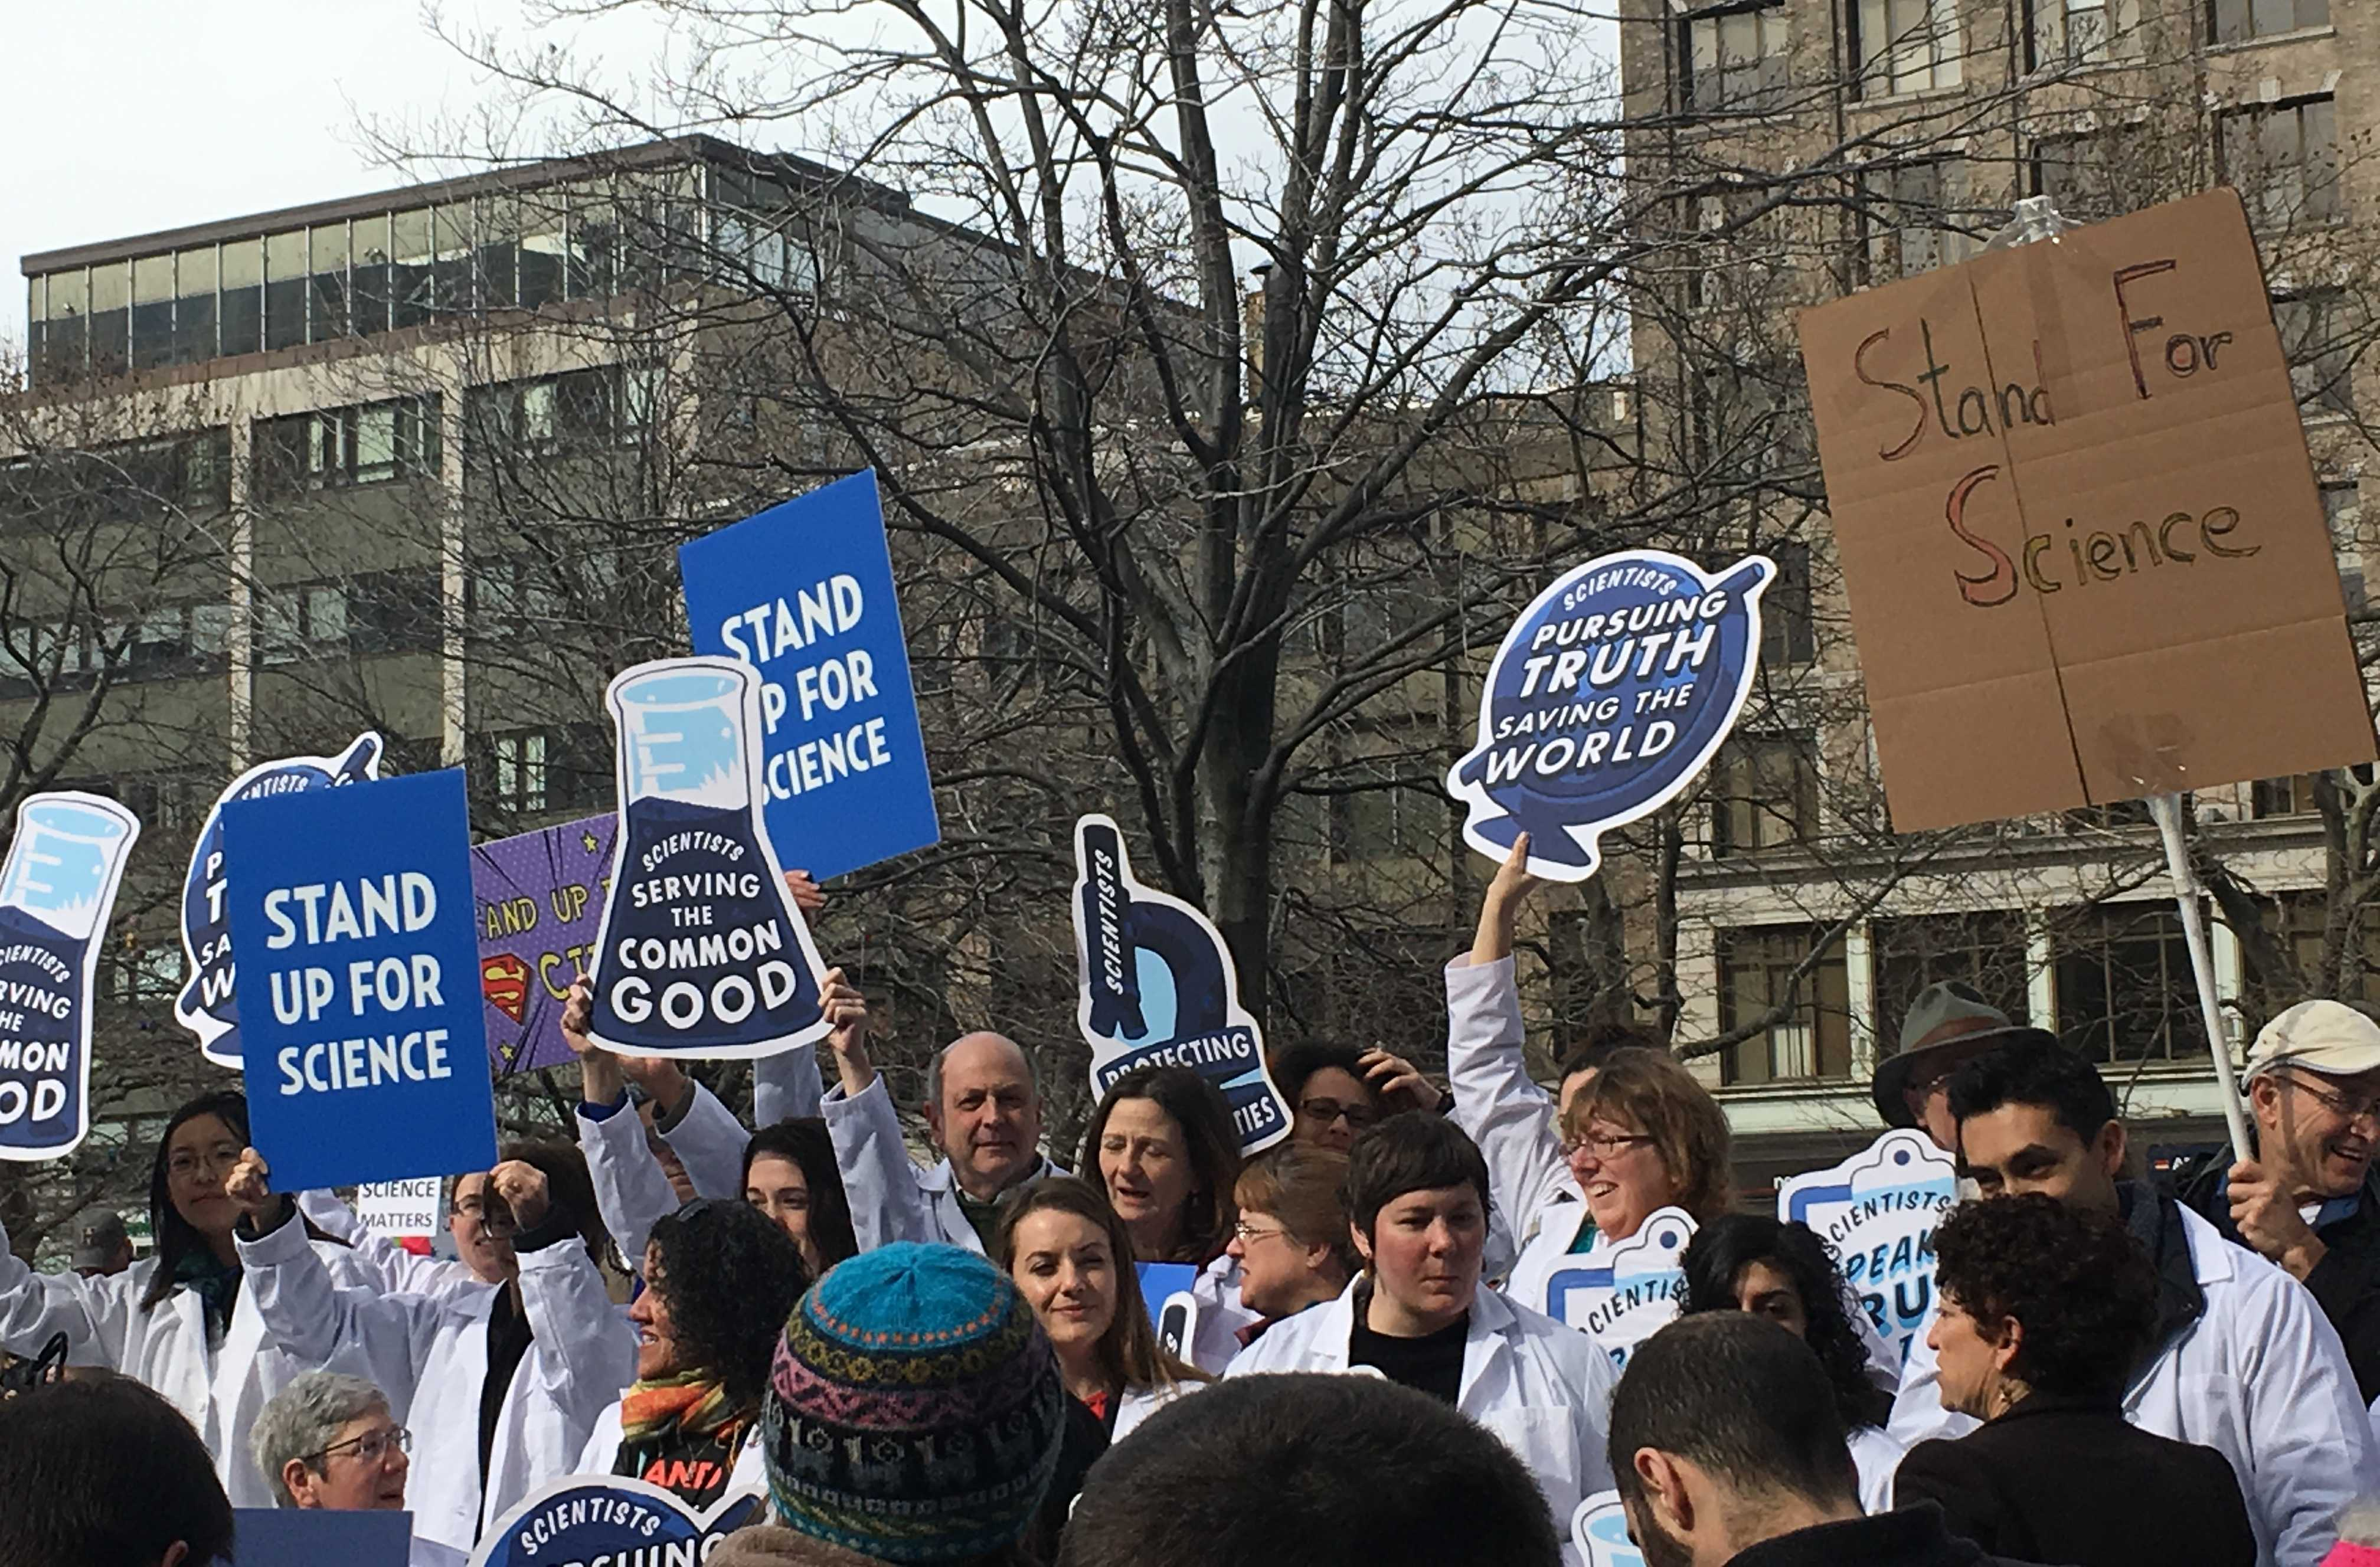 Stand up for science rally